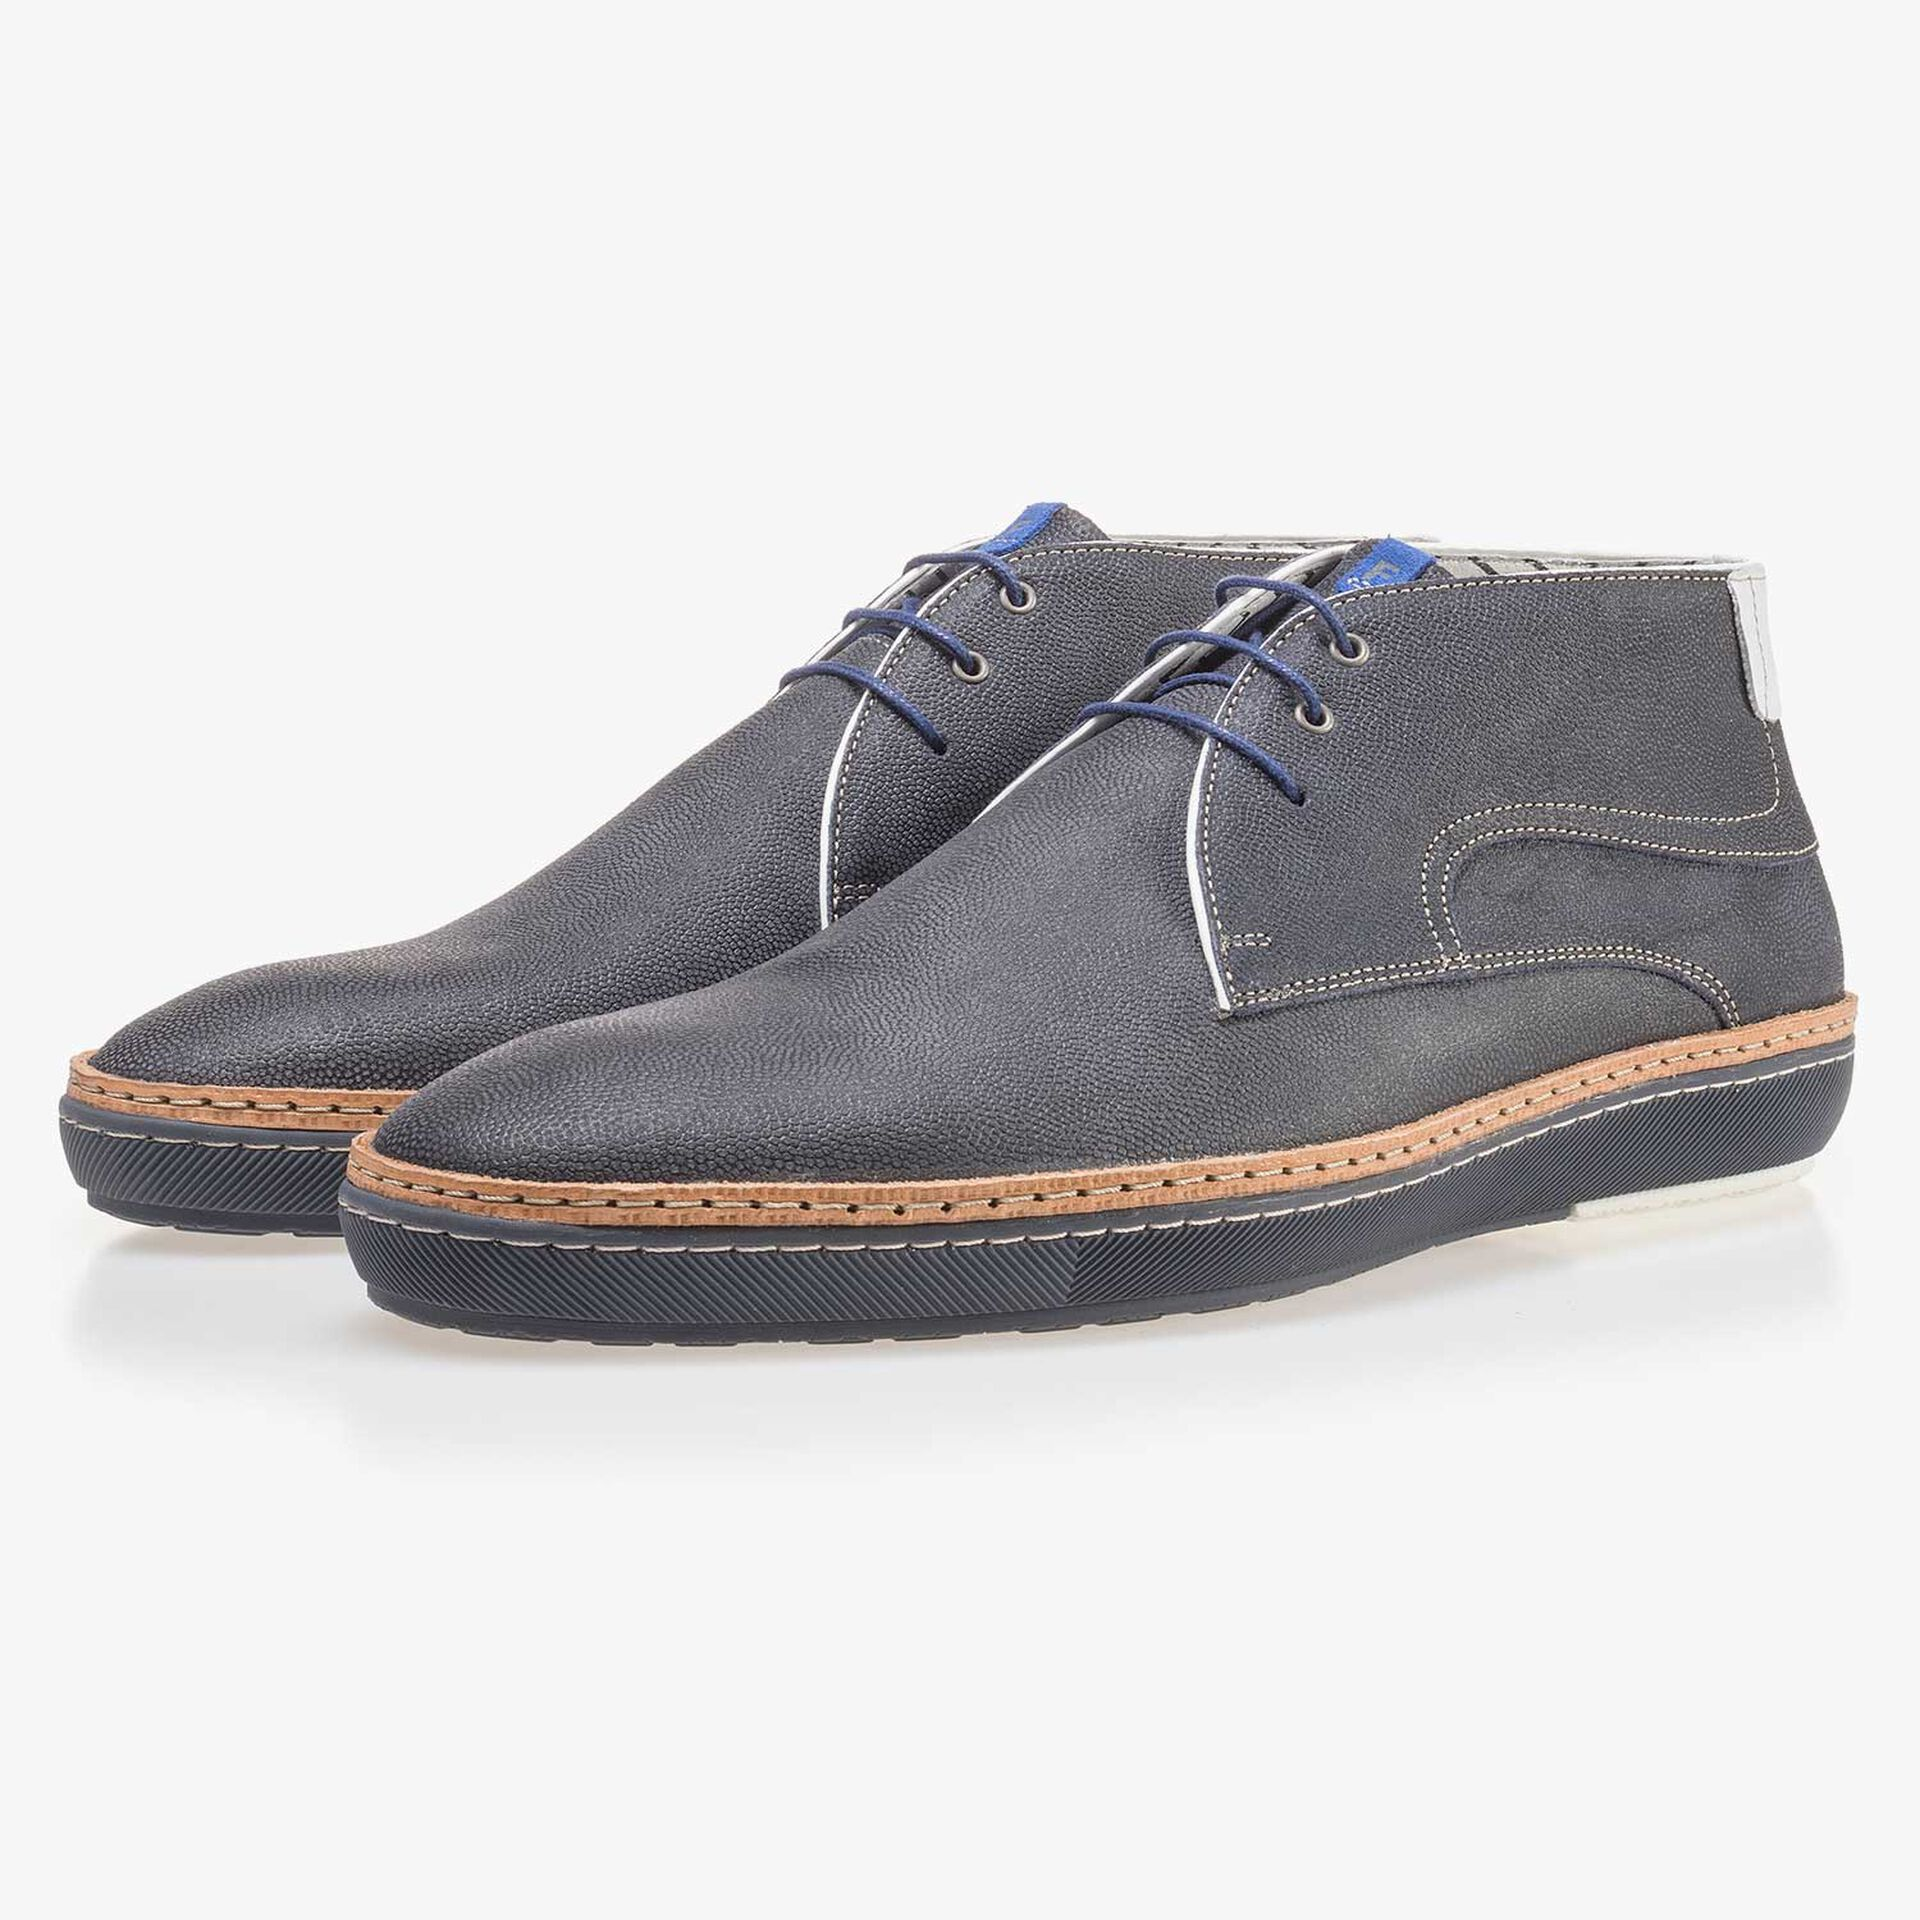 Dark blue suede leather lace boot with pattern